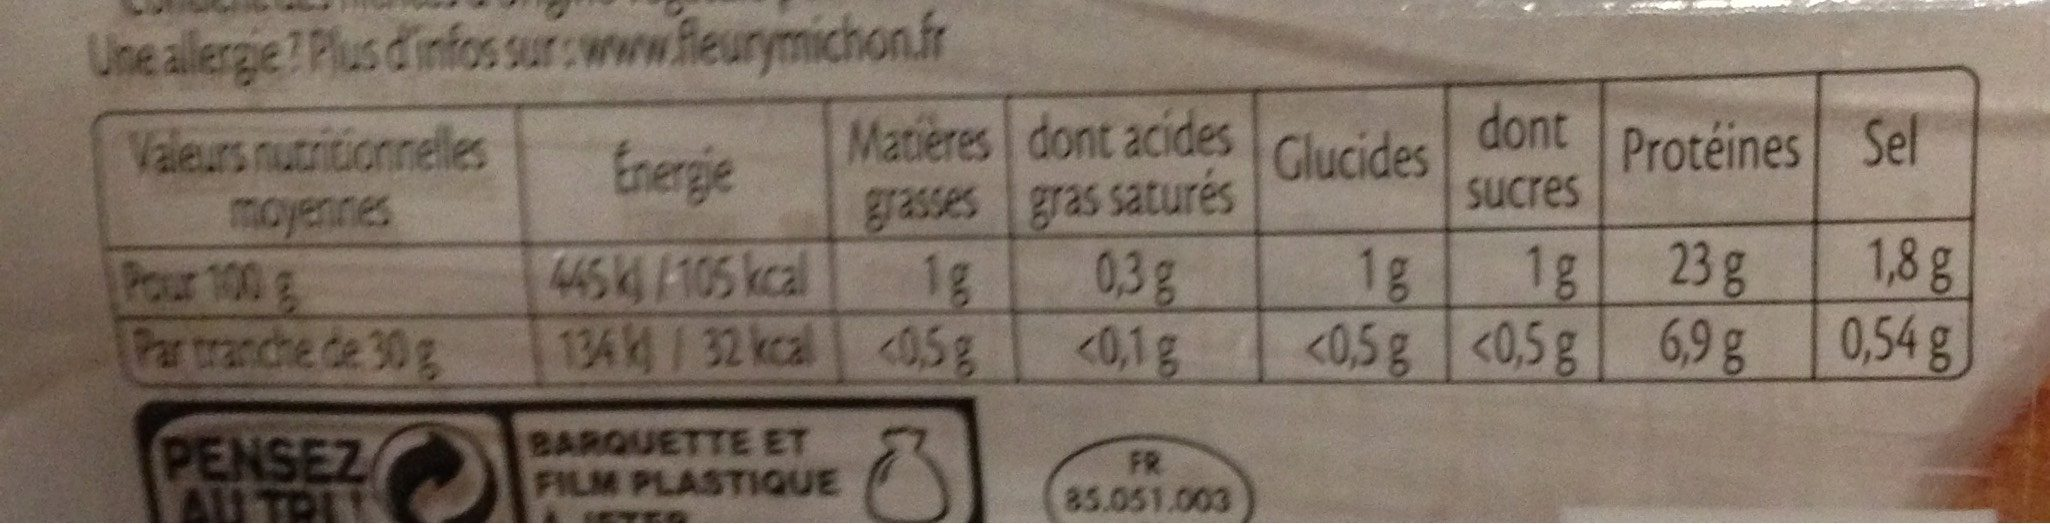 Rôti de dinde cuit 100% filet* - 6 tranches - Nutrition facts